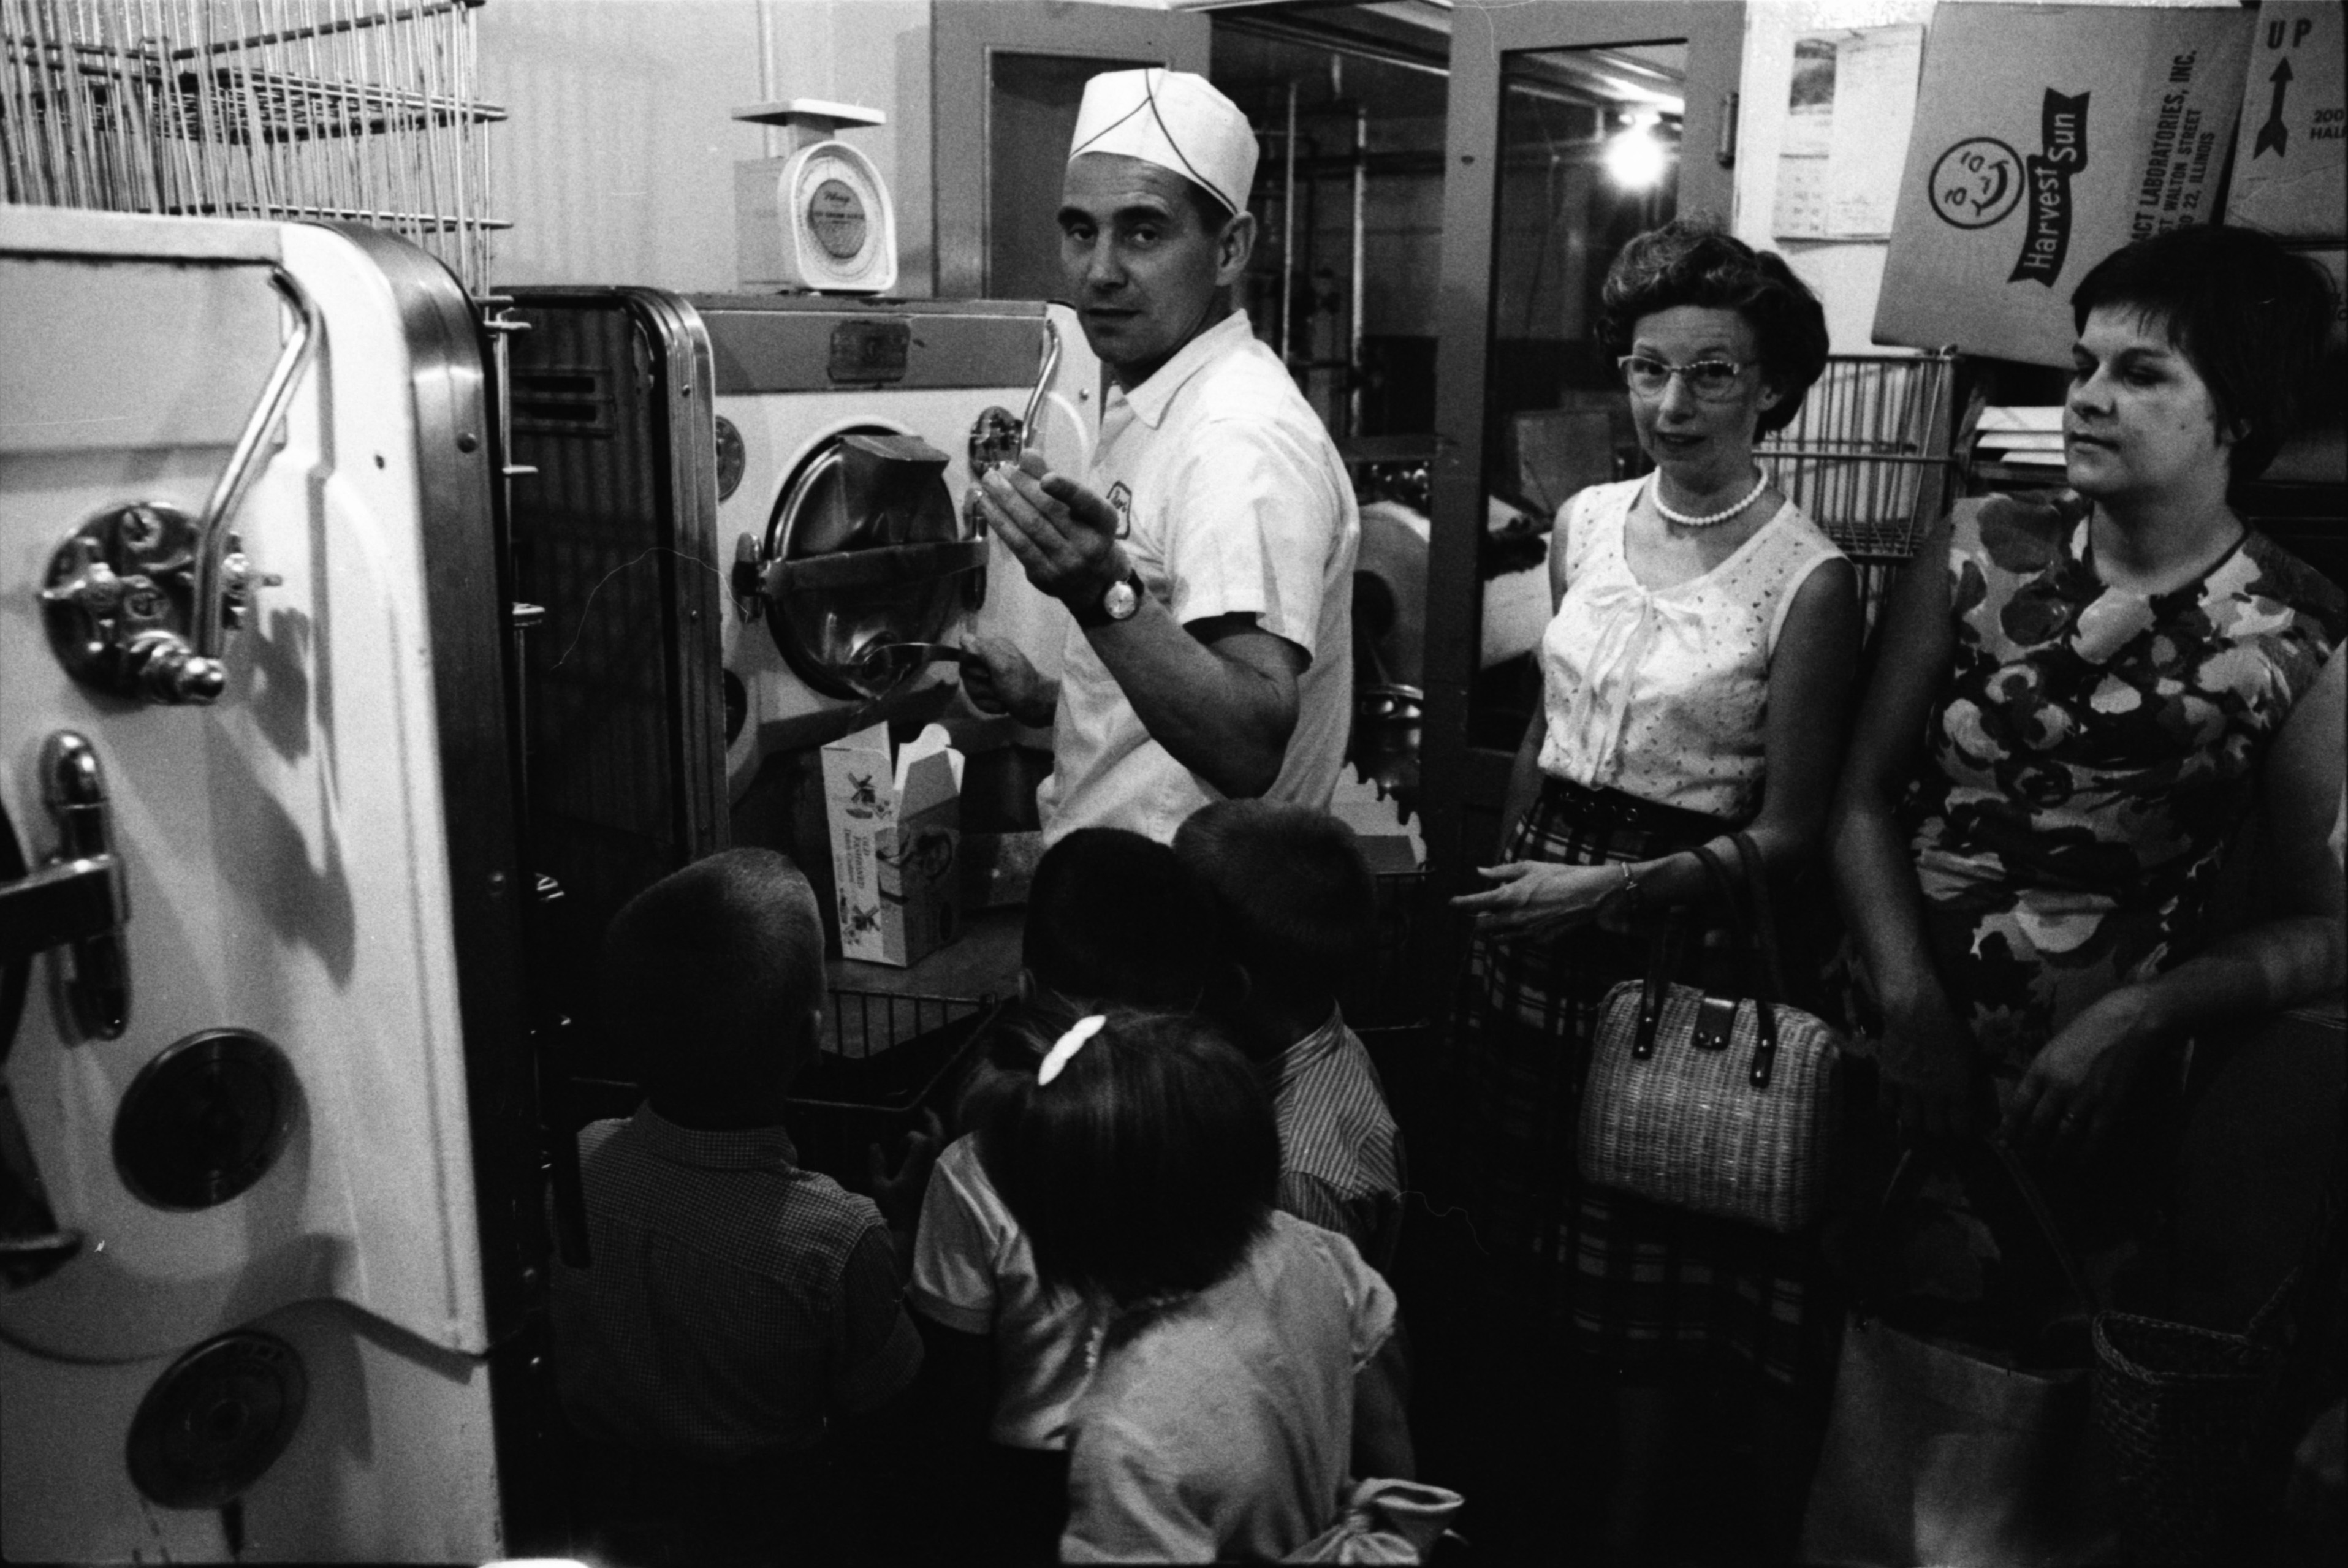 Children From Ann Arbor Cooperative Nursery & Mothers Wait For Ice Cream At Bolgos Dairy, July 3, 1964 image